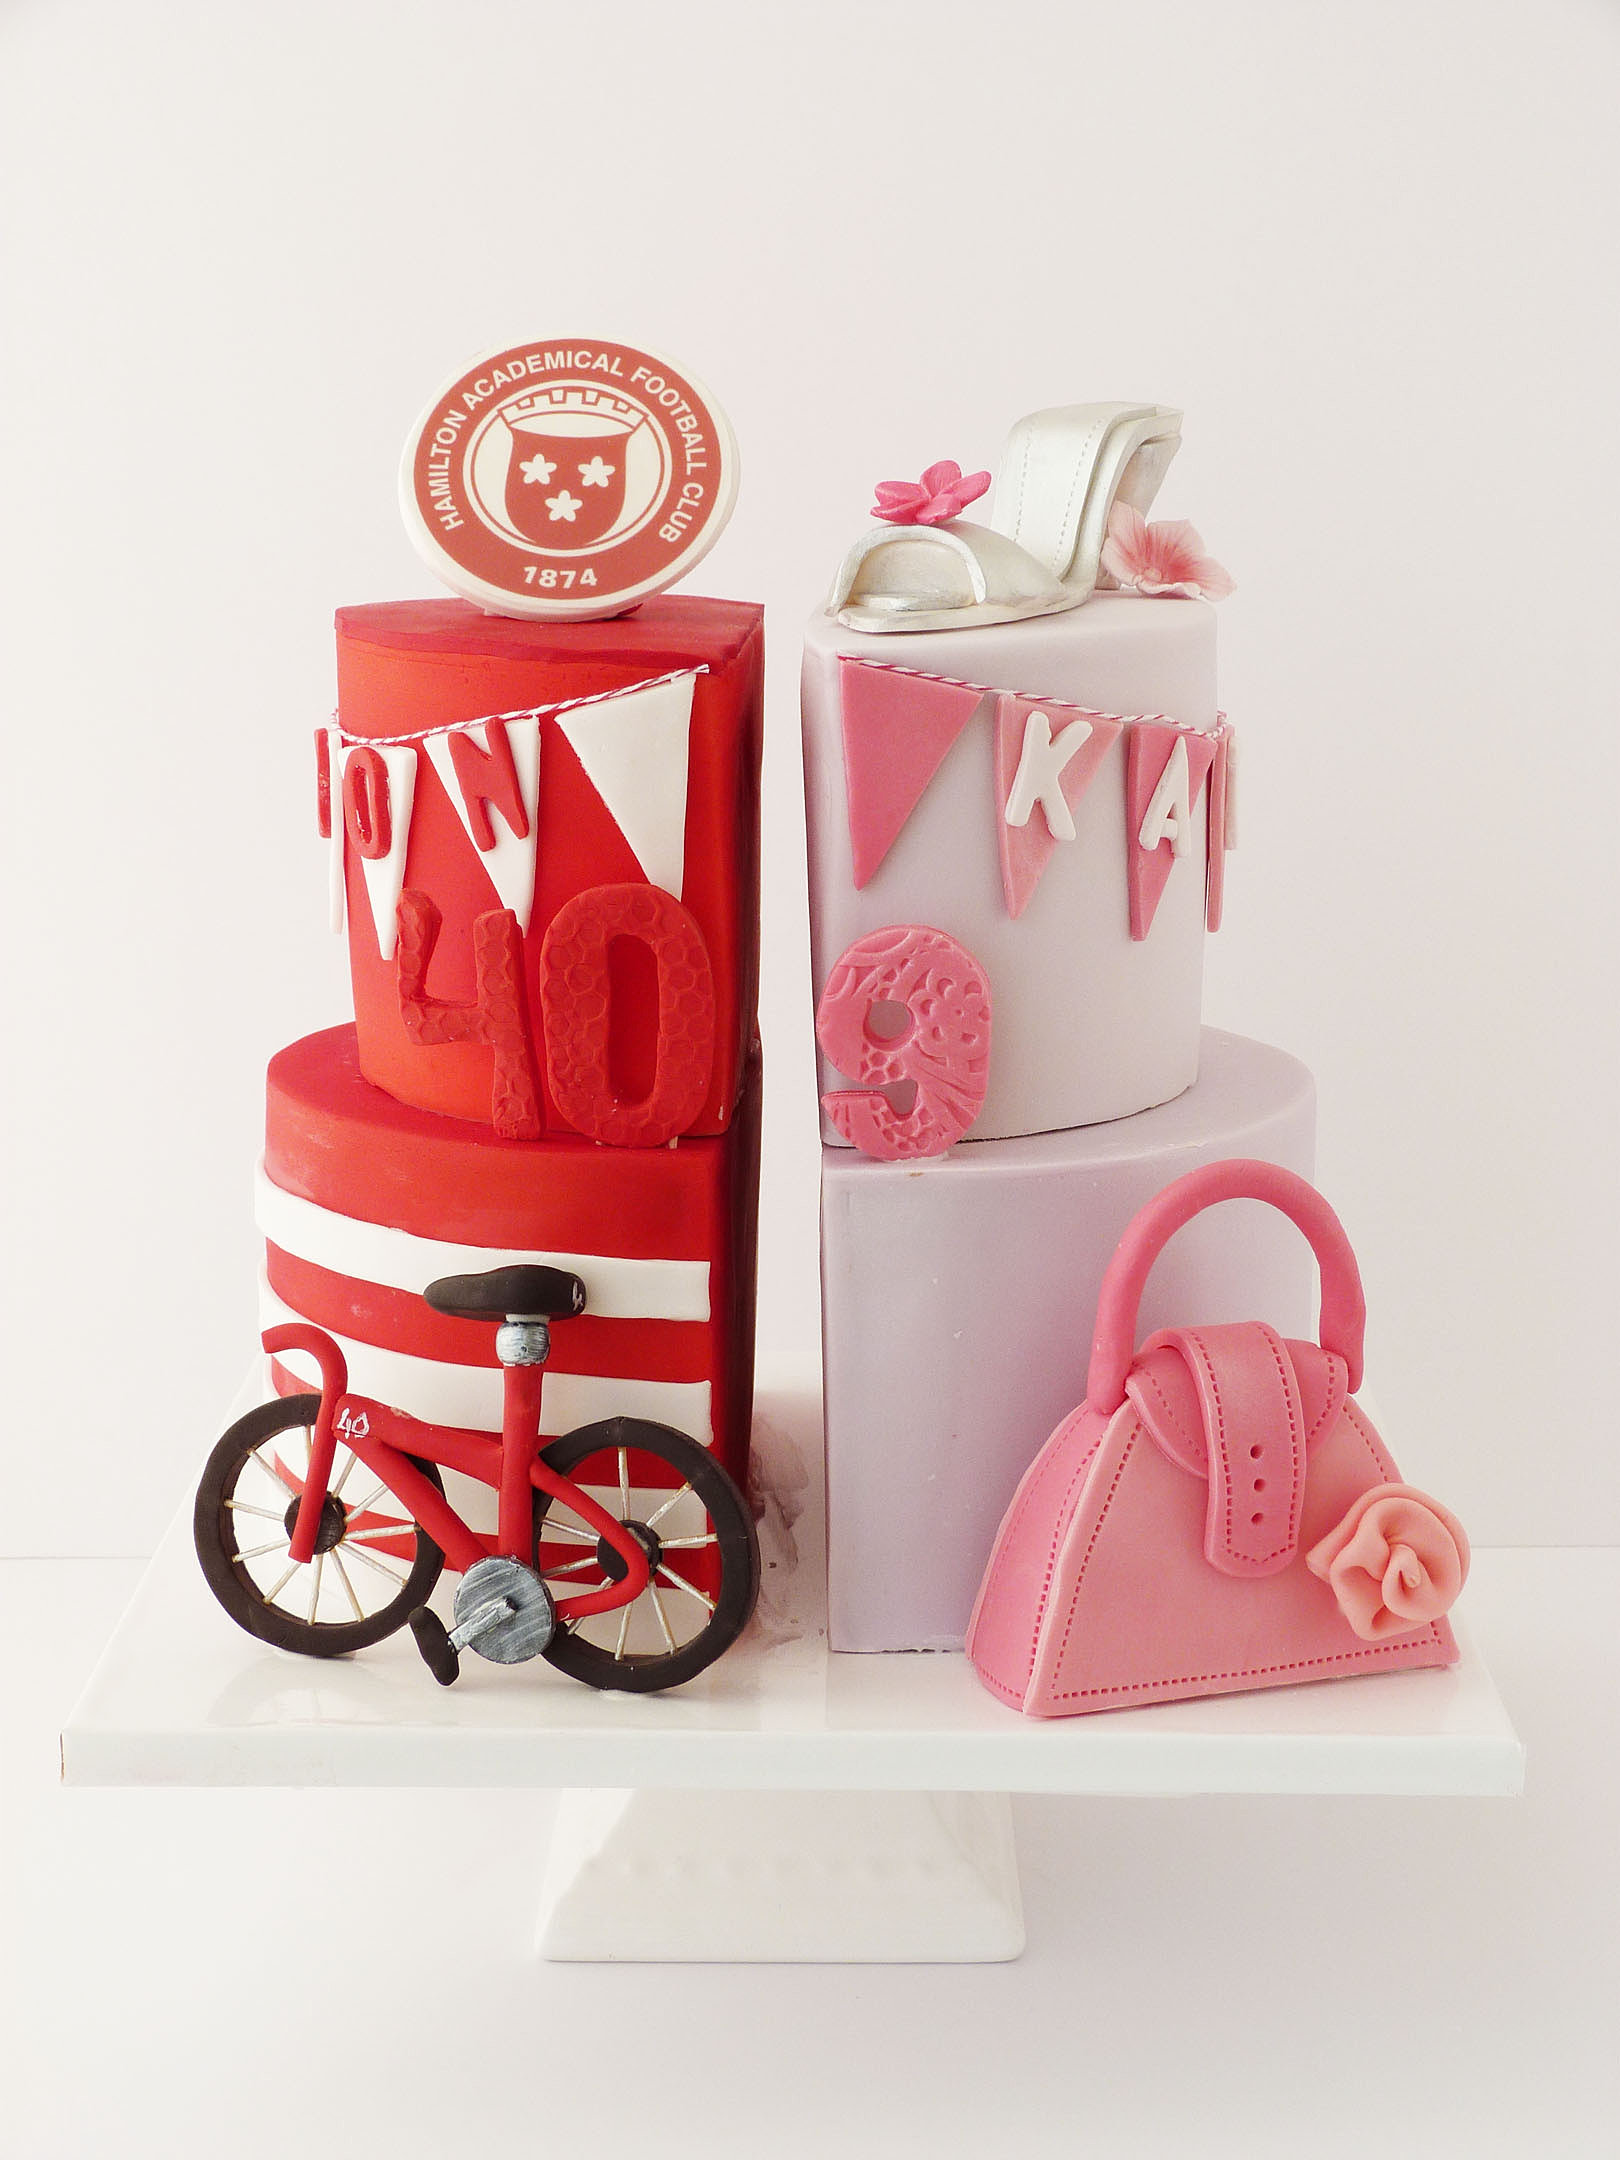 Cake Decorating Classes Scotland : Cake decorating classes scotland bespoke cakes for all ...